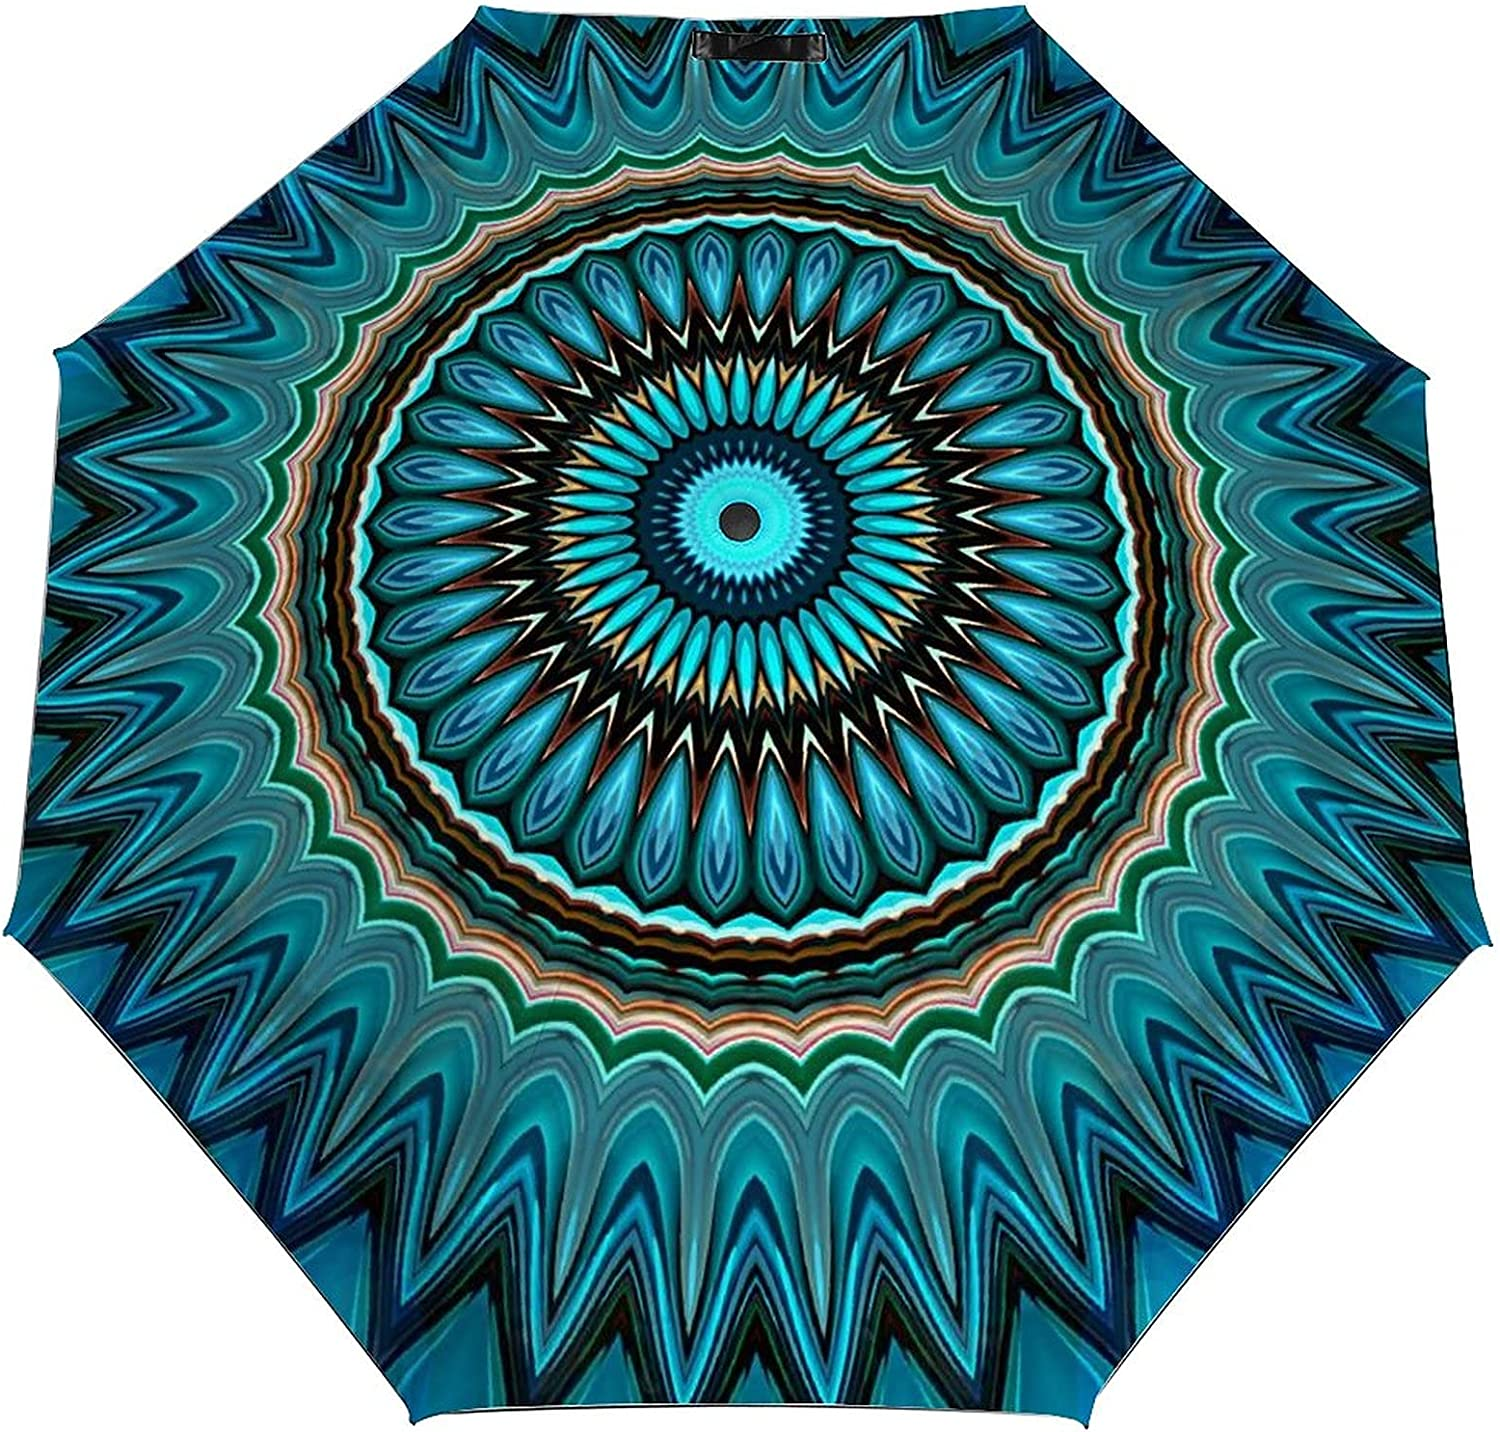 Turquoise Teal Green Complete Free Shipping Circle Umbrella U Max 76% OFF Portable Travel Windproof